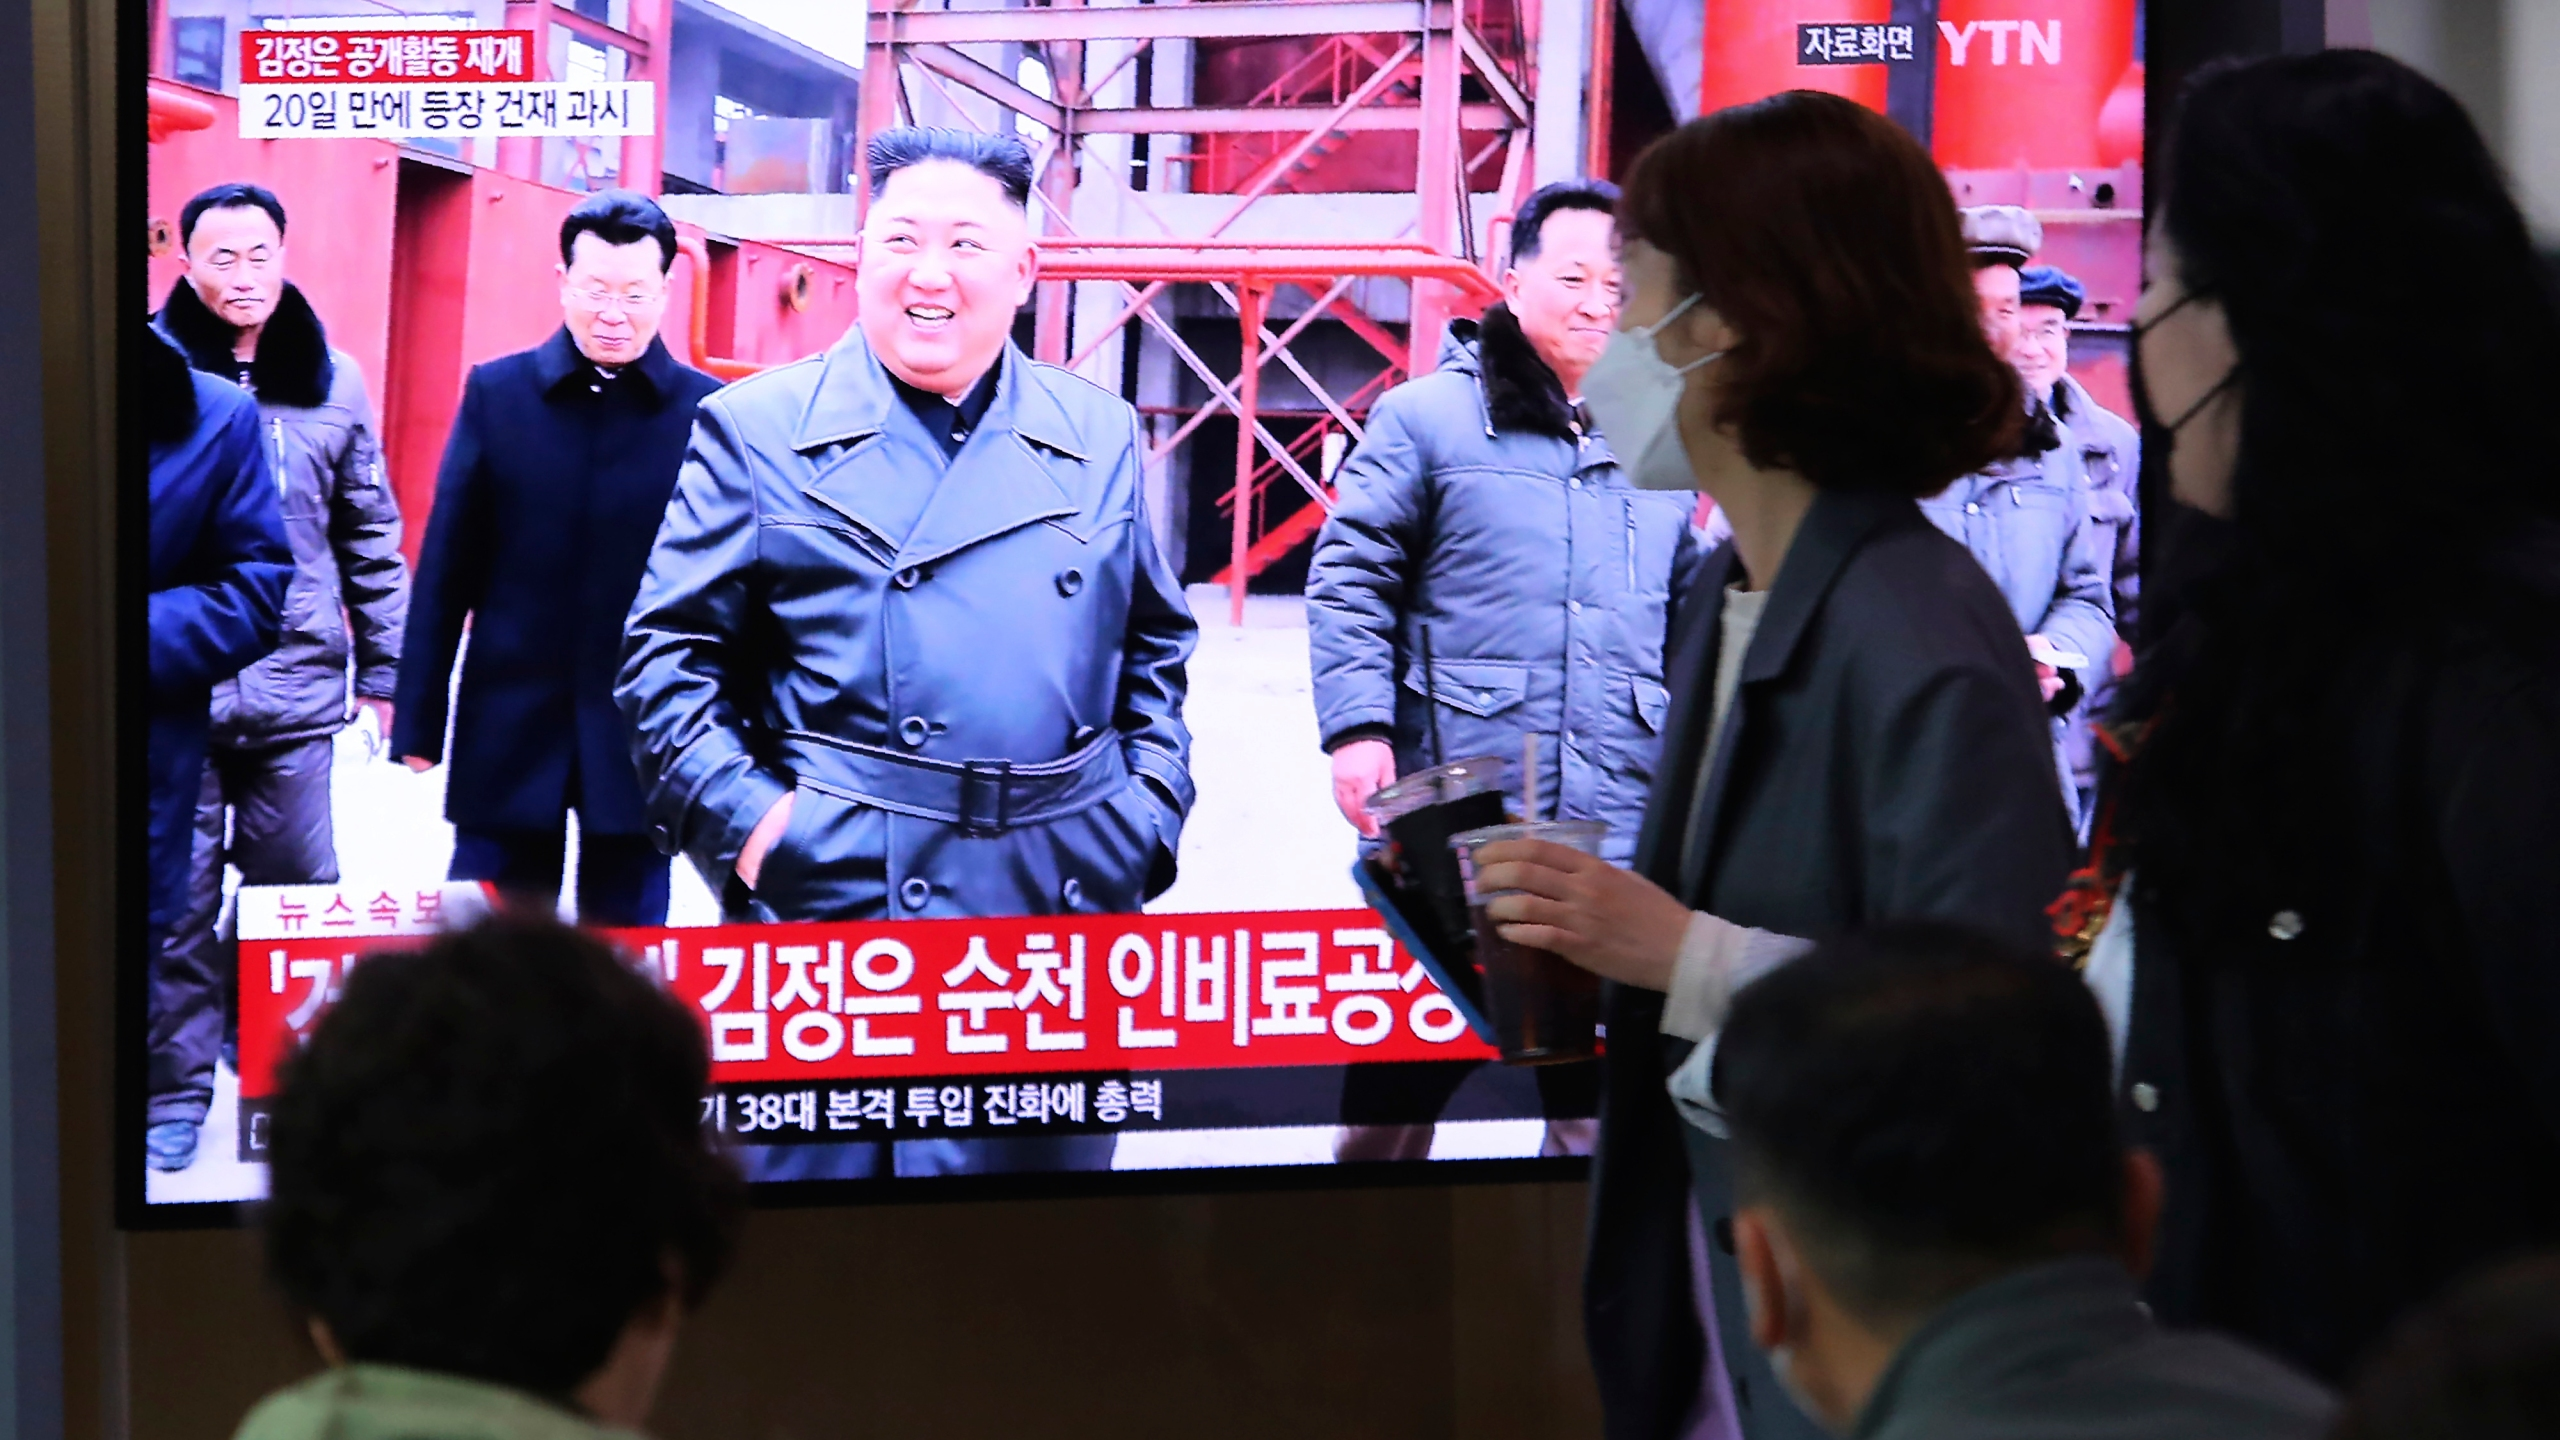 """People watch a TV showing a file image of North Korean leader Kim Jong Un during a news program at the Seoul Railway Station in Seoul, South Korea, Saturday, May 2, 2020. Kim made his first public appearance in several weeks as he celebrated the completion of a fertilizer factory near Pyongyang, state media said Saturday, ending an absence that had triggered global rumors that he was seriously ill. The sign reads: """"Kim Jong Un attended a ceremony marking the completion of a fertilizer factory."""" (AP Photo/Ahn Young-joon)"""